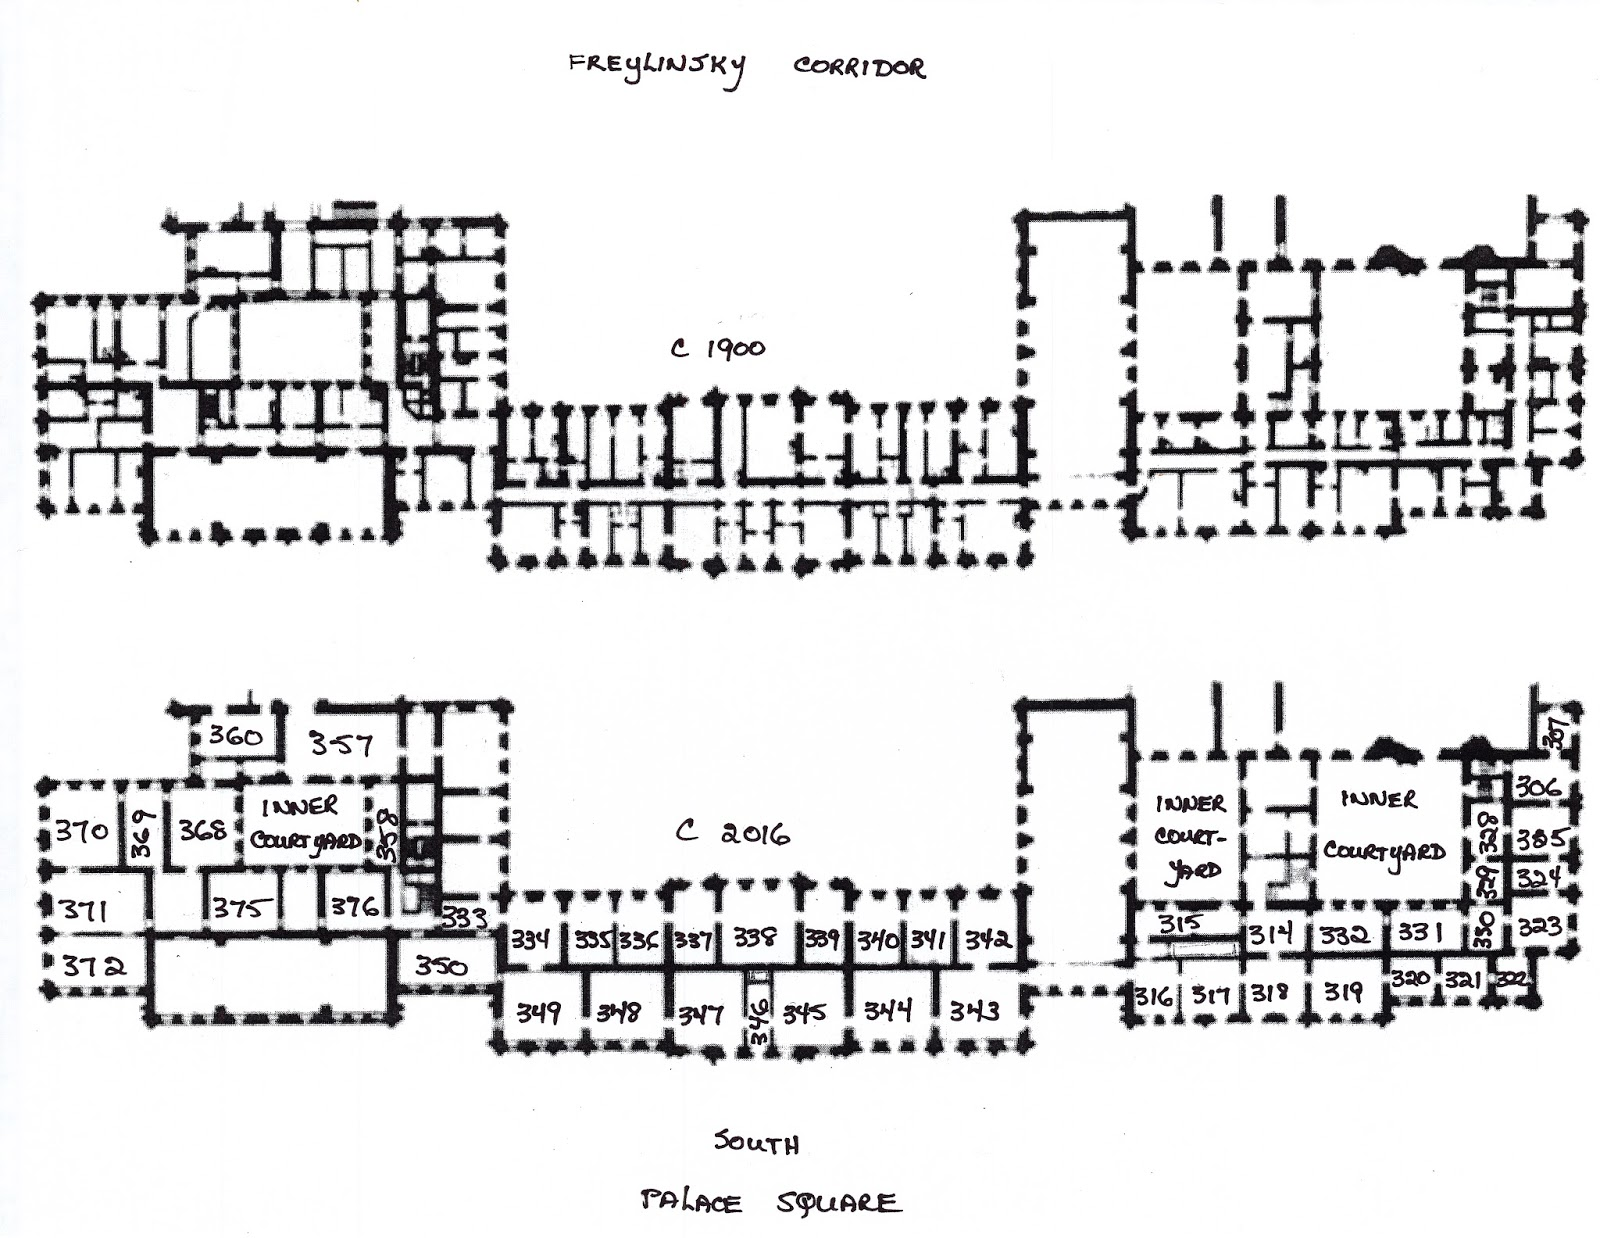 Winter palace research plan c1900 of the freylinsky for Palace plan